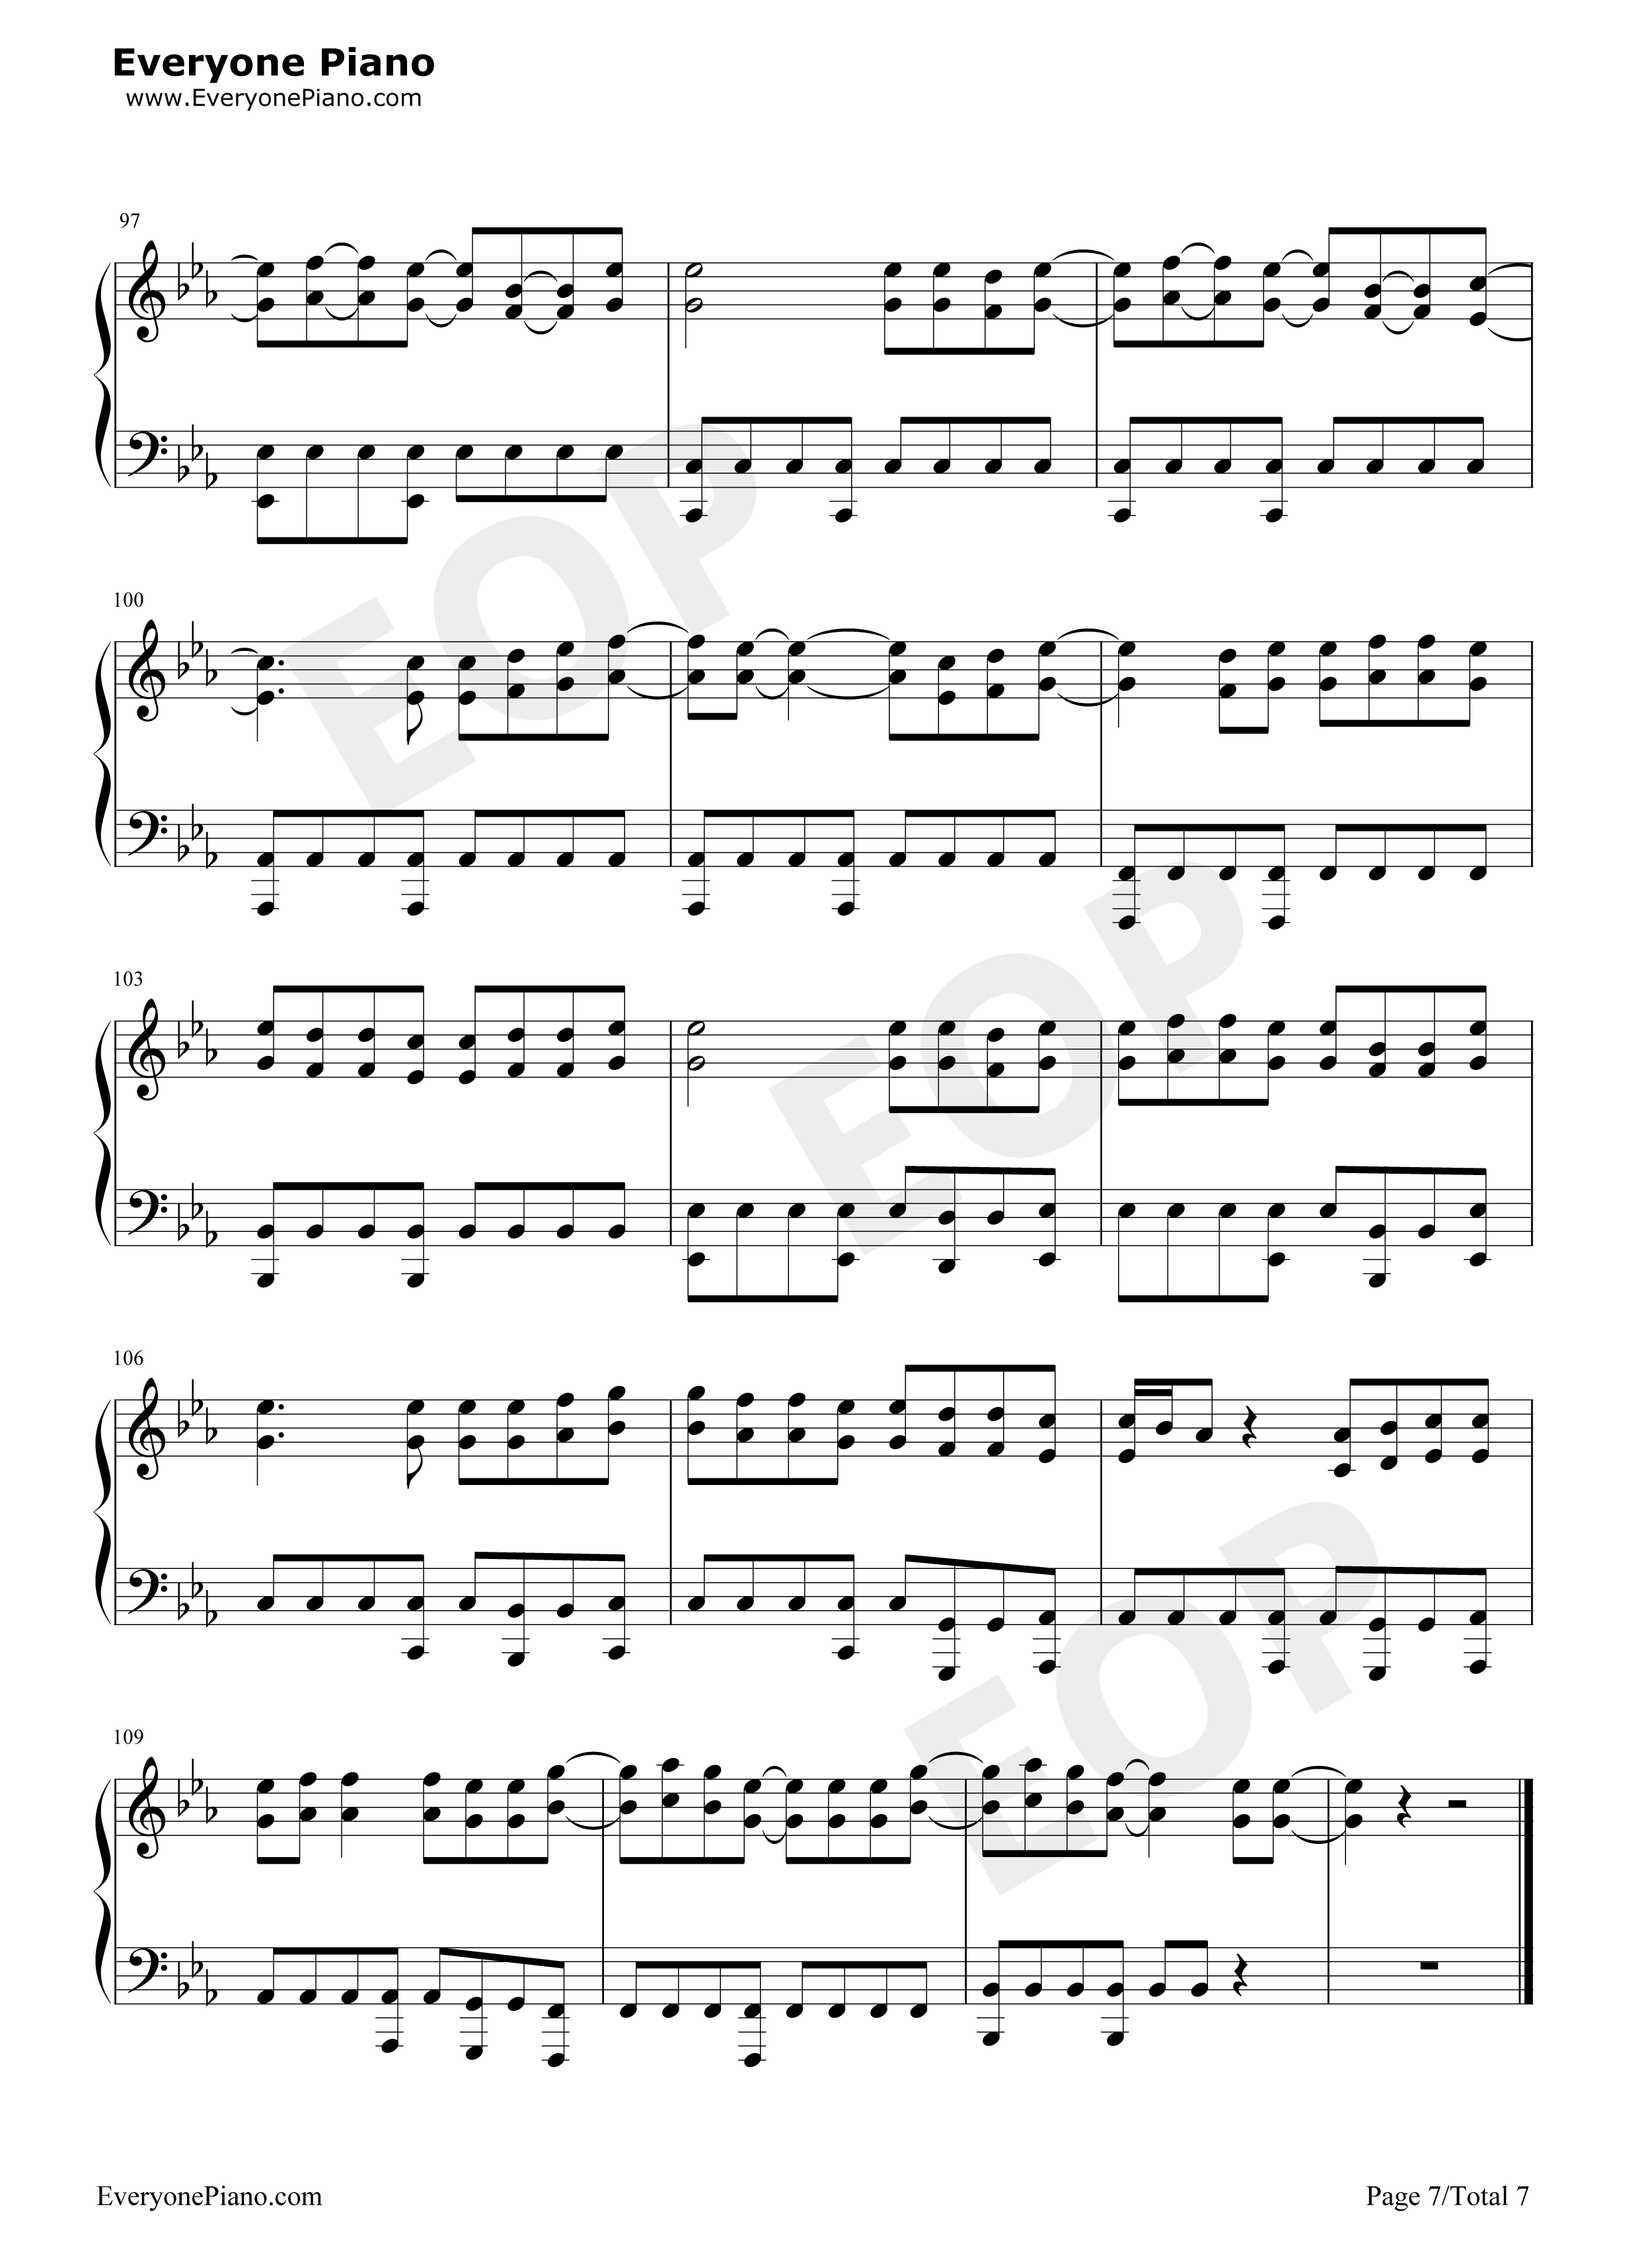 Peter pan exo stave preview 7 free piano sheet music piano chords listen now print sheet peter pan exo stave preview 7 hexwebz Images